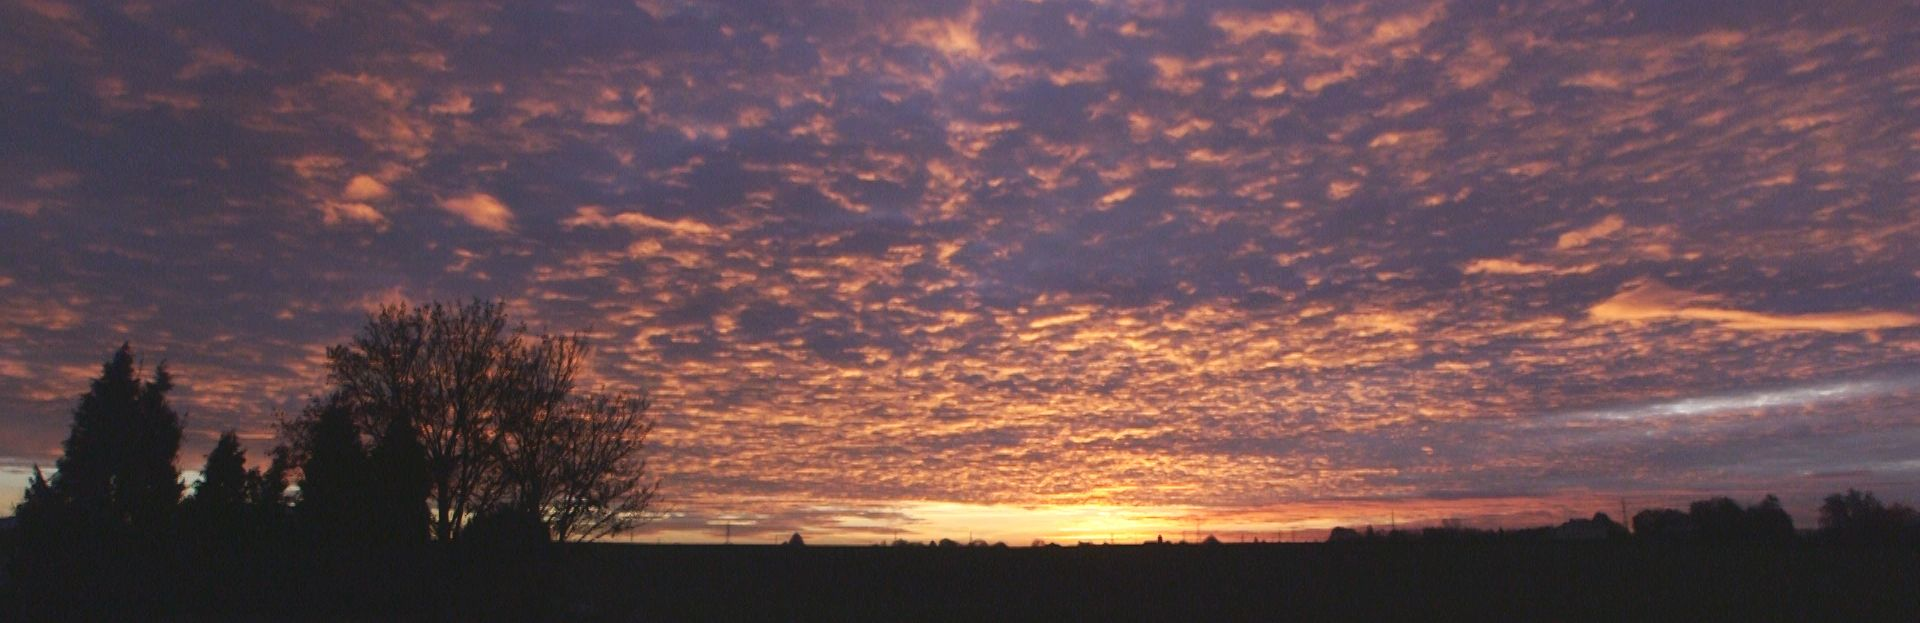 documentaire, coucher soleil, nature, timelapse